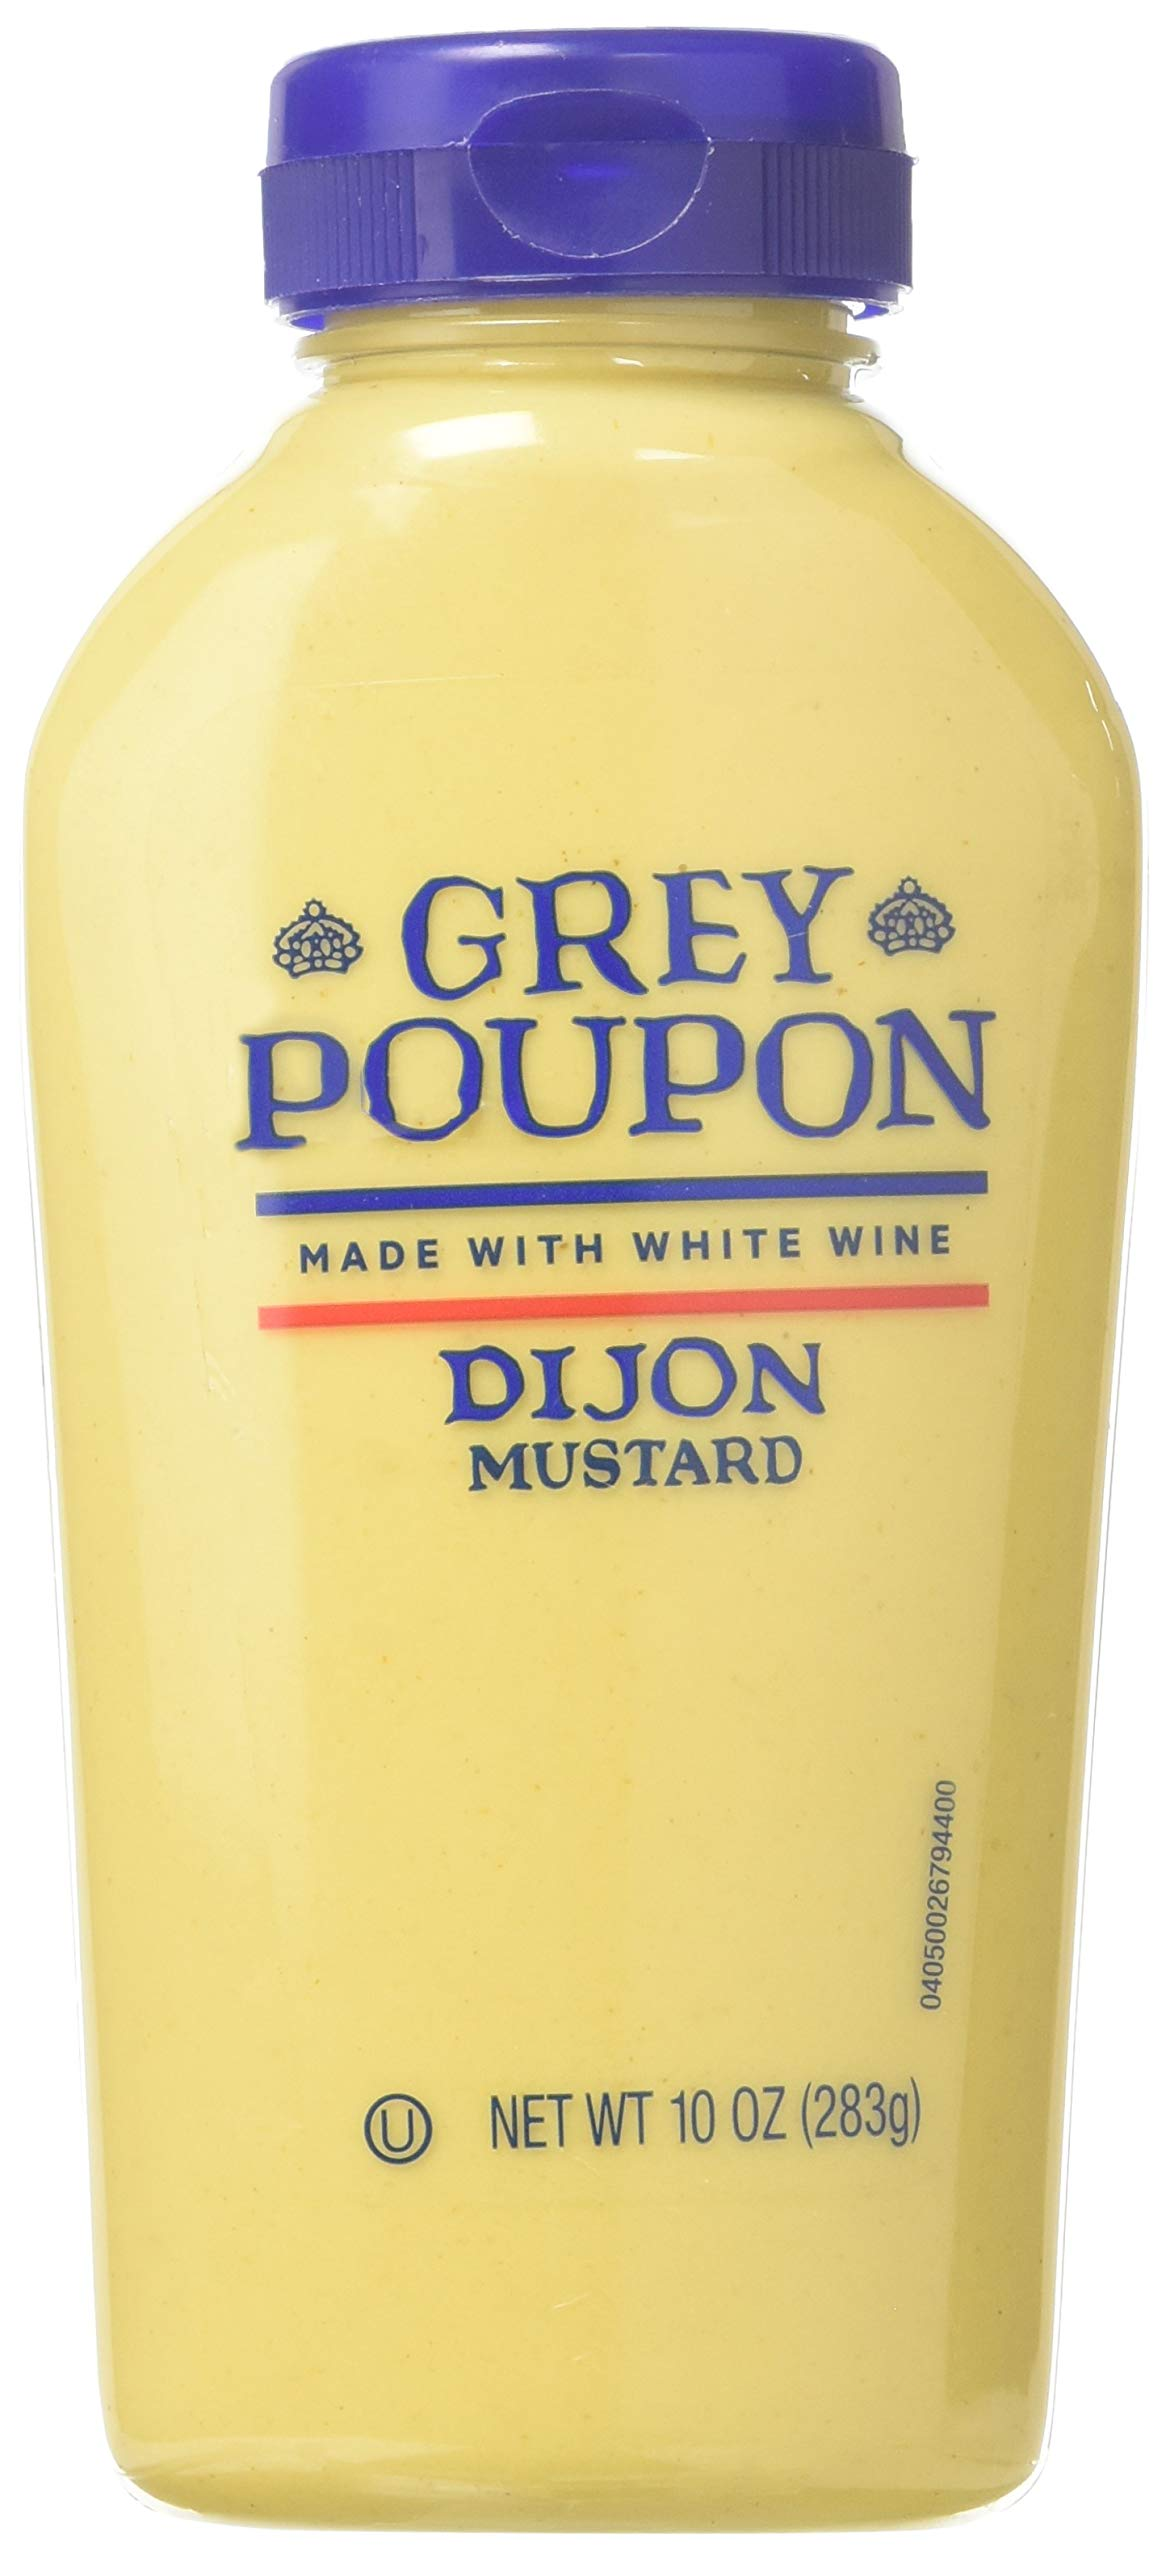 Grey Poupon Dijon Mustard (10 oz Bottle) 1 One 10 oz. bottle of Grey Poupon Dijon Mustard Grey Poupon Dijon Mustard uses the finest ingredients for a gourmet condiment #1 Grade Mustard Seeds and spices provide strong, delicious flavor